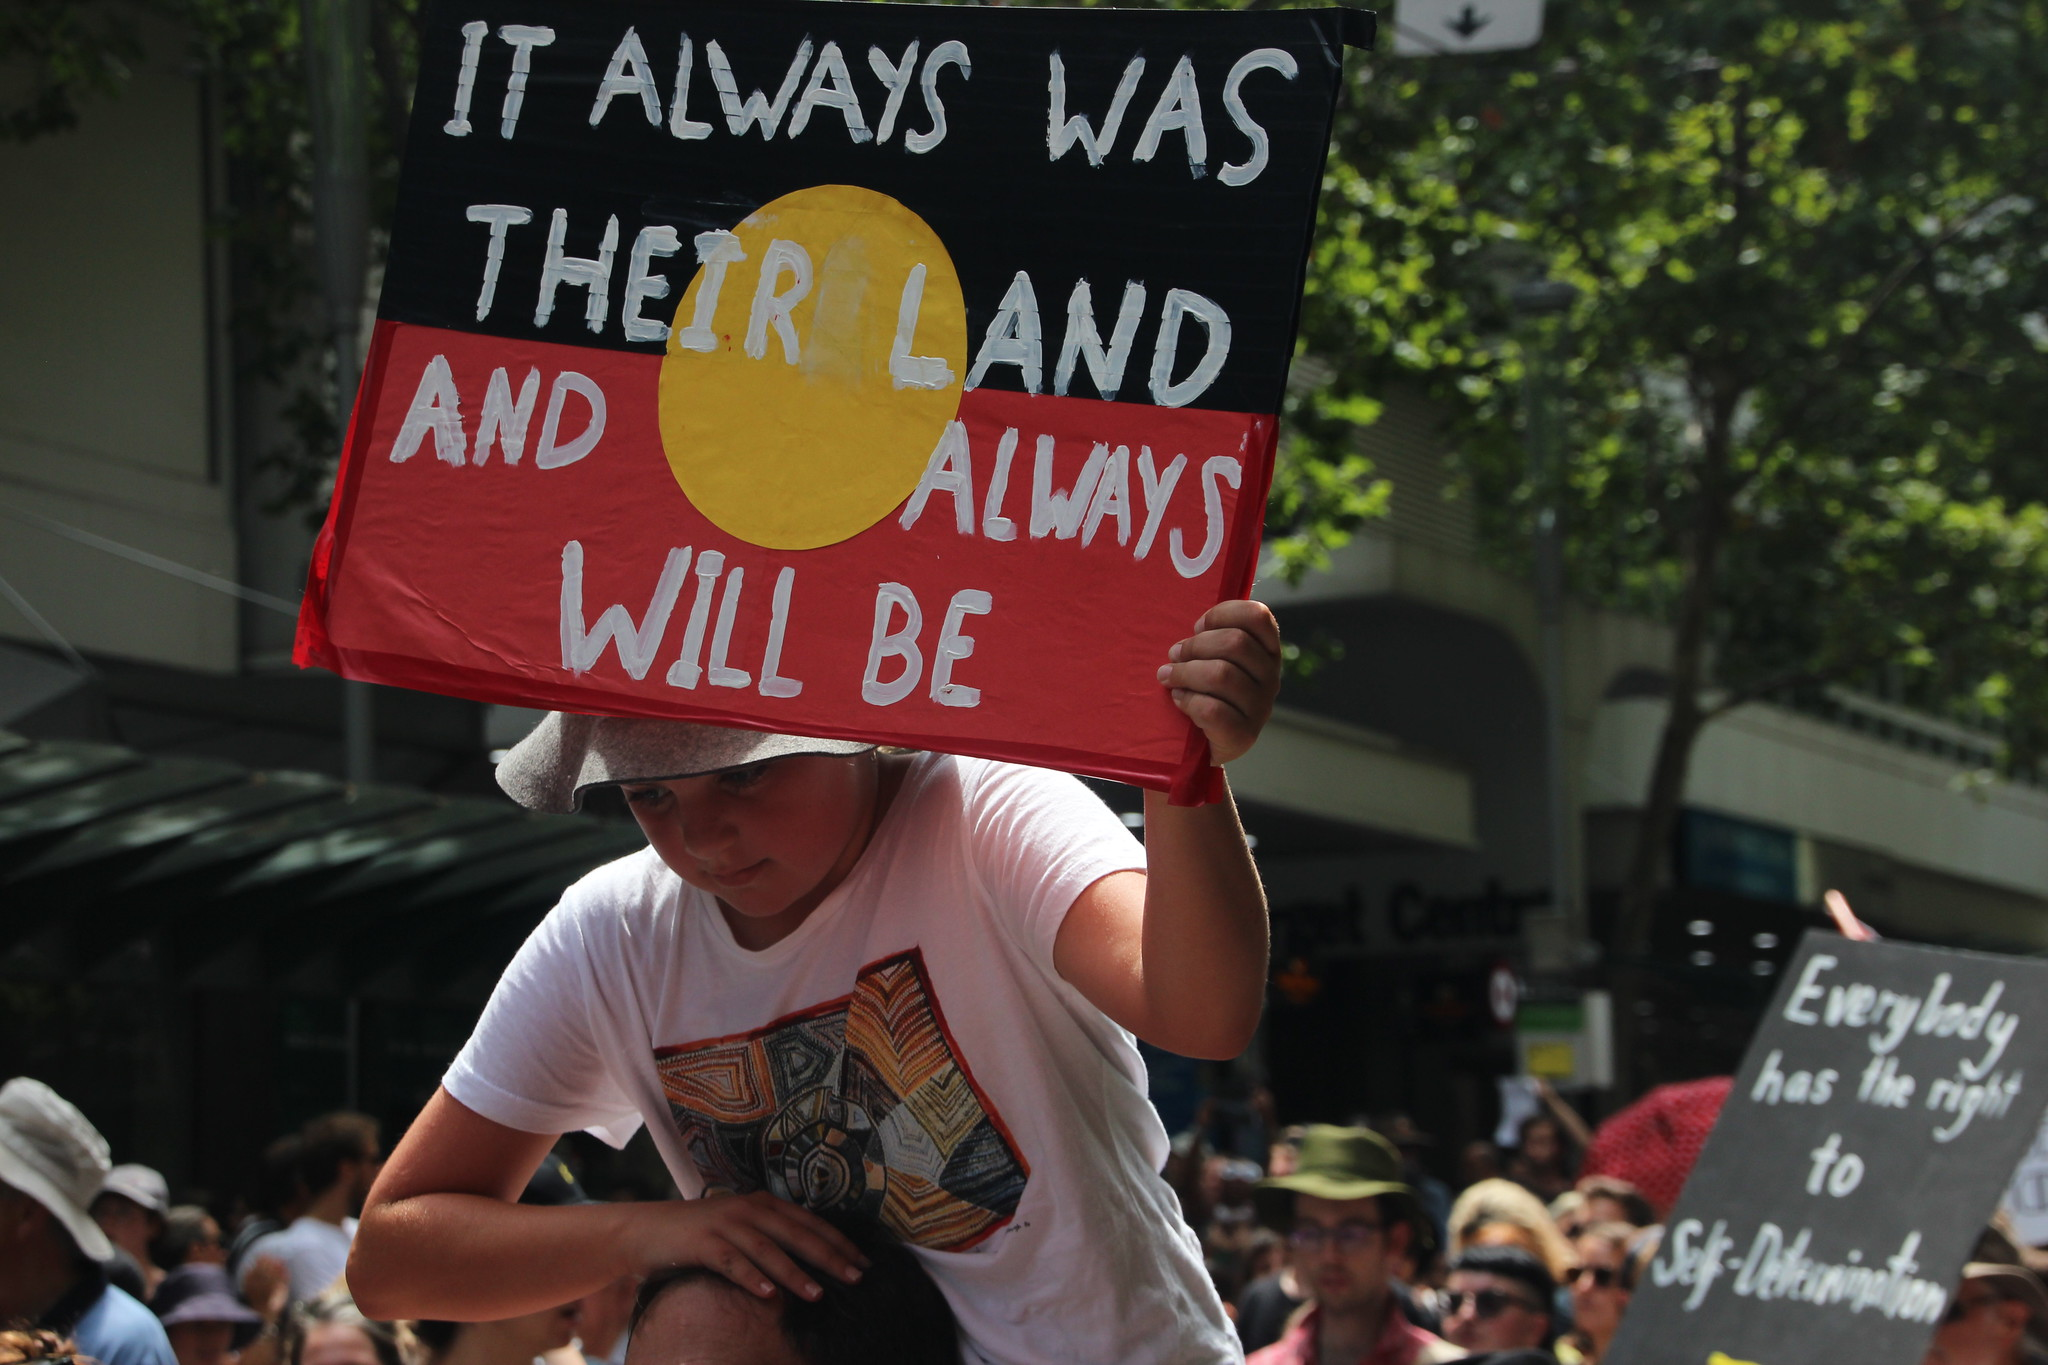 protester with sign saying 'it always was their land and always will be'.